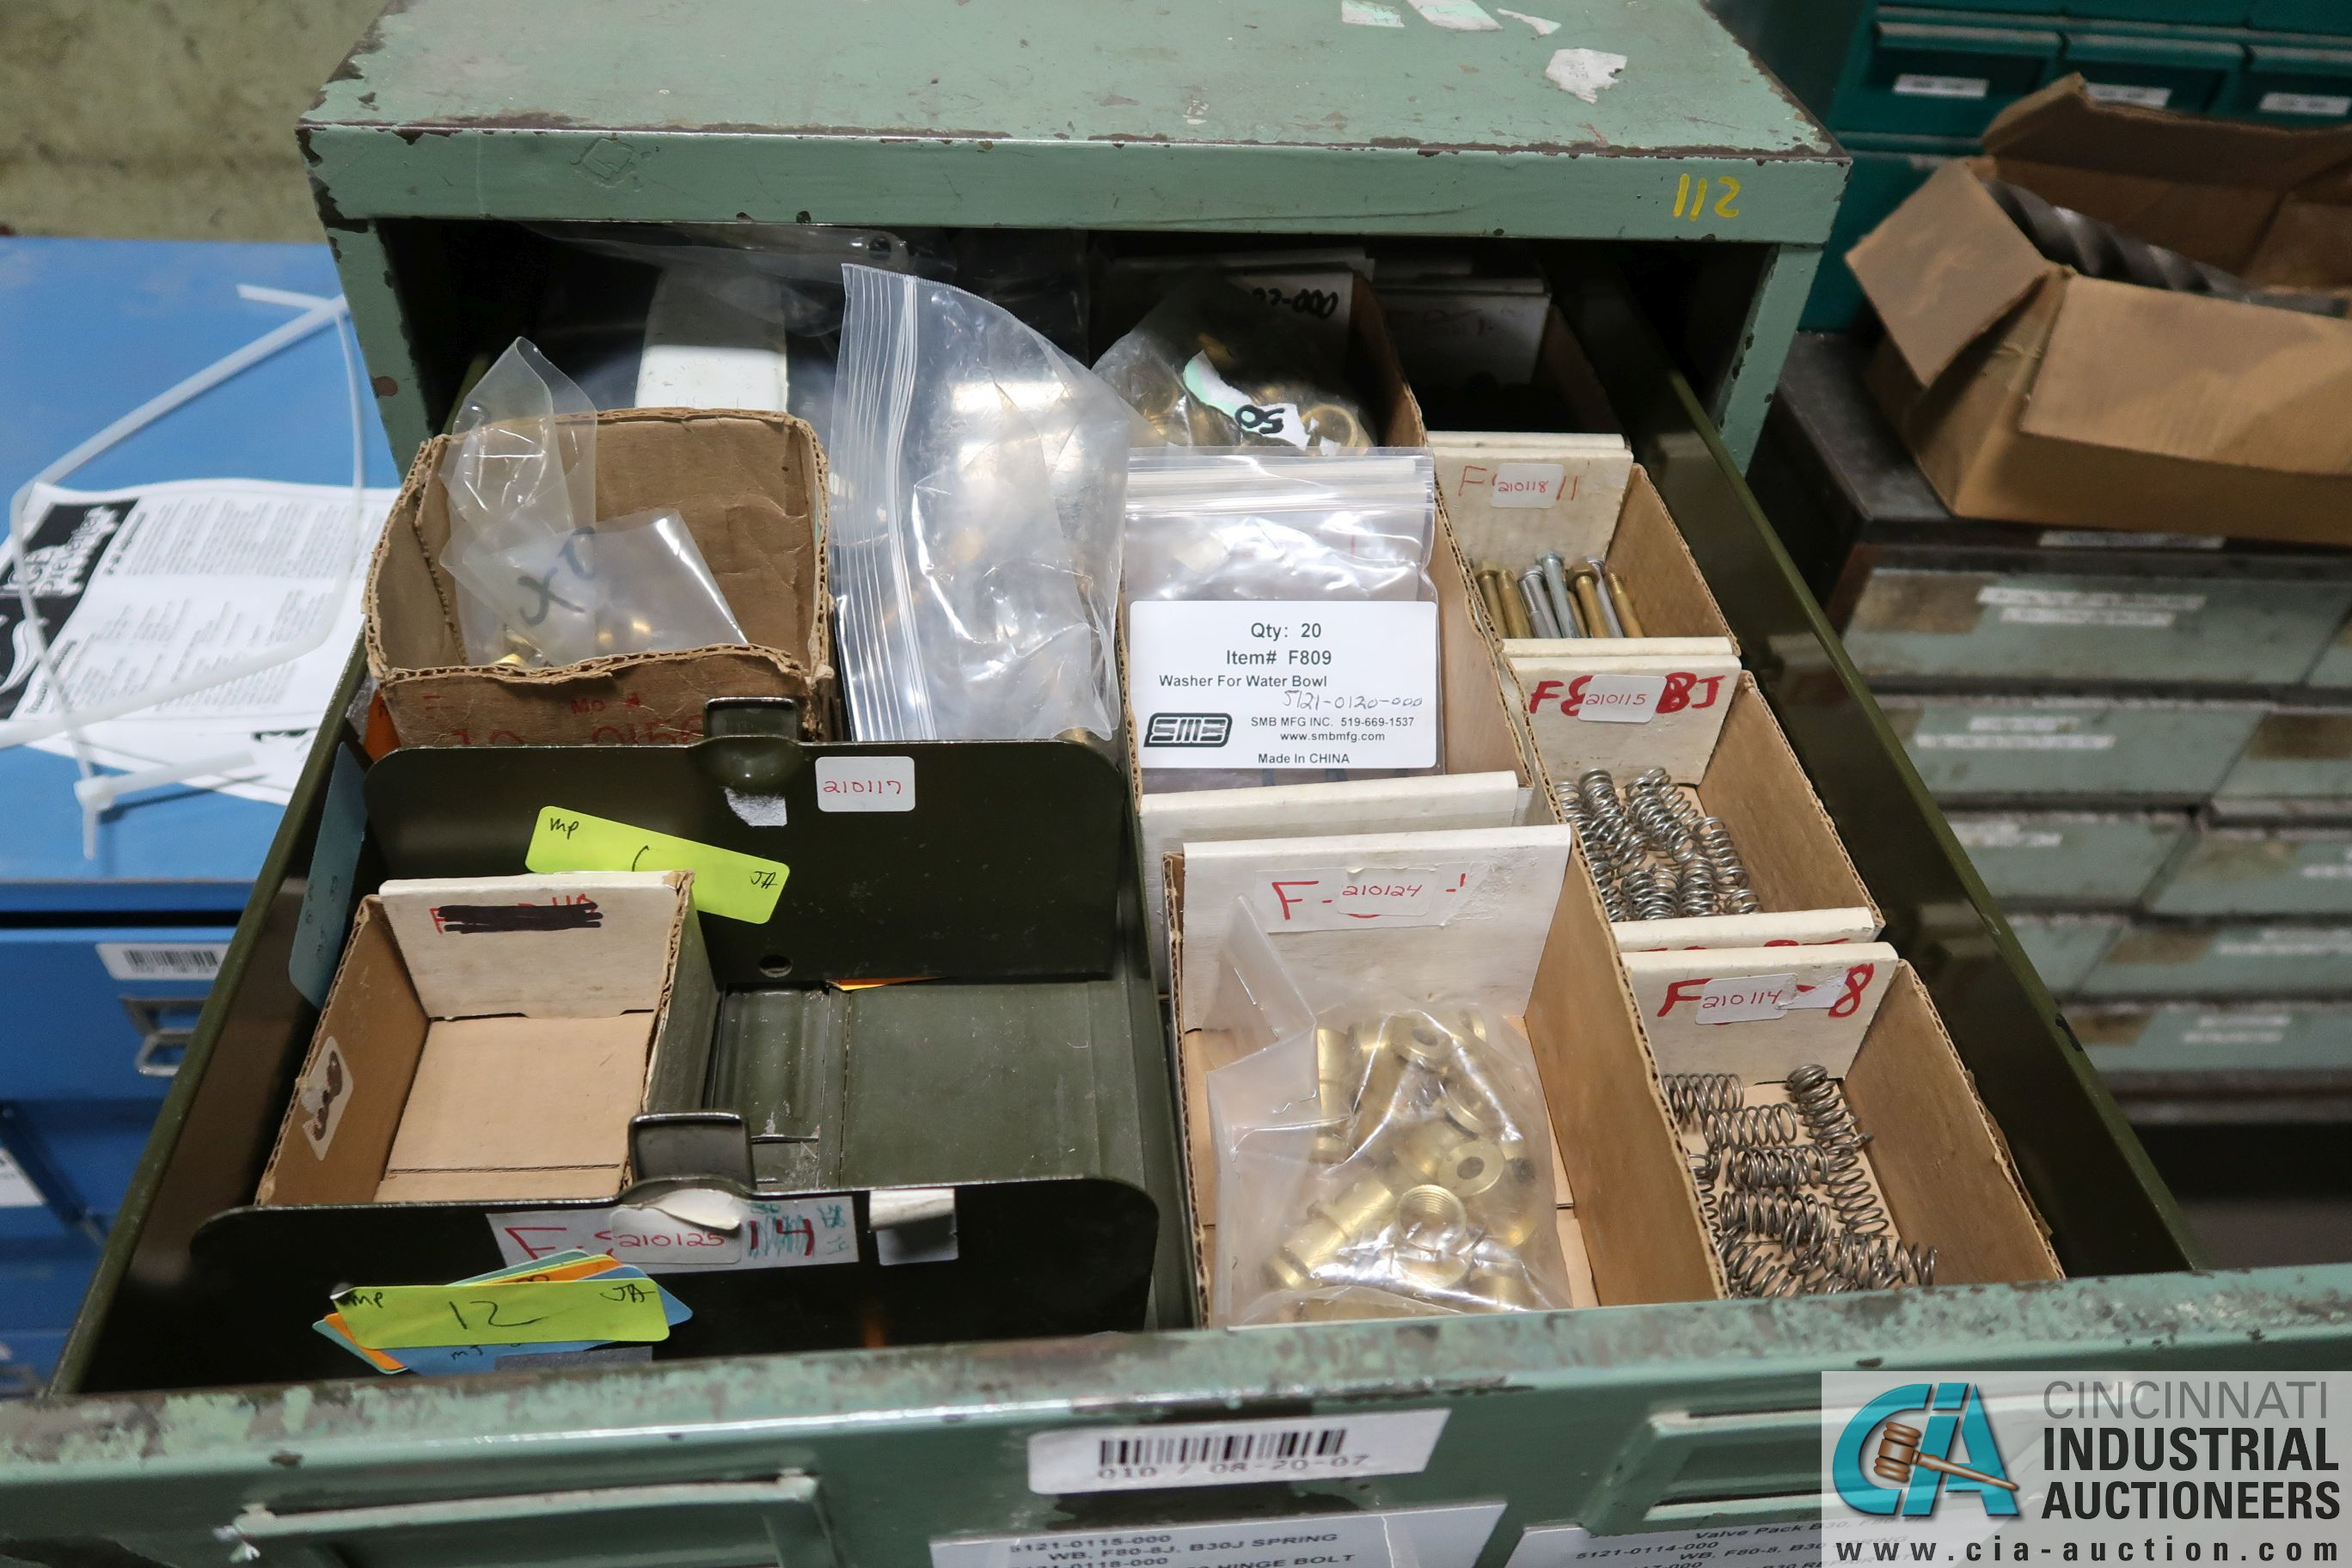 CABINETS WITH MISC. TOOLING, PARTS, HOLD DOWNS - Image 2 of 15